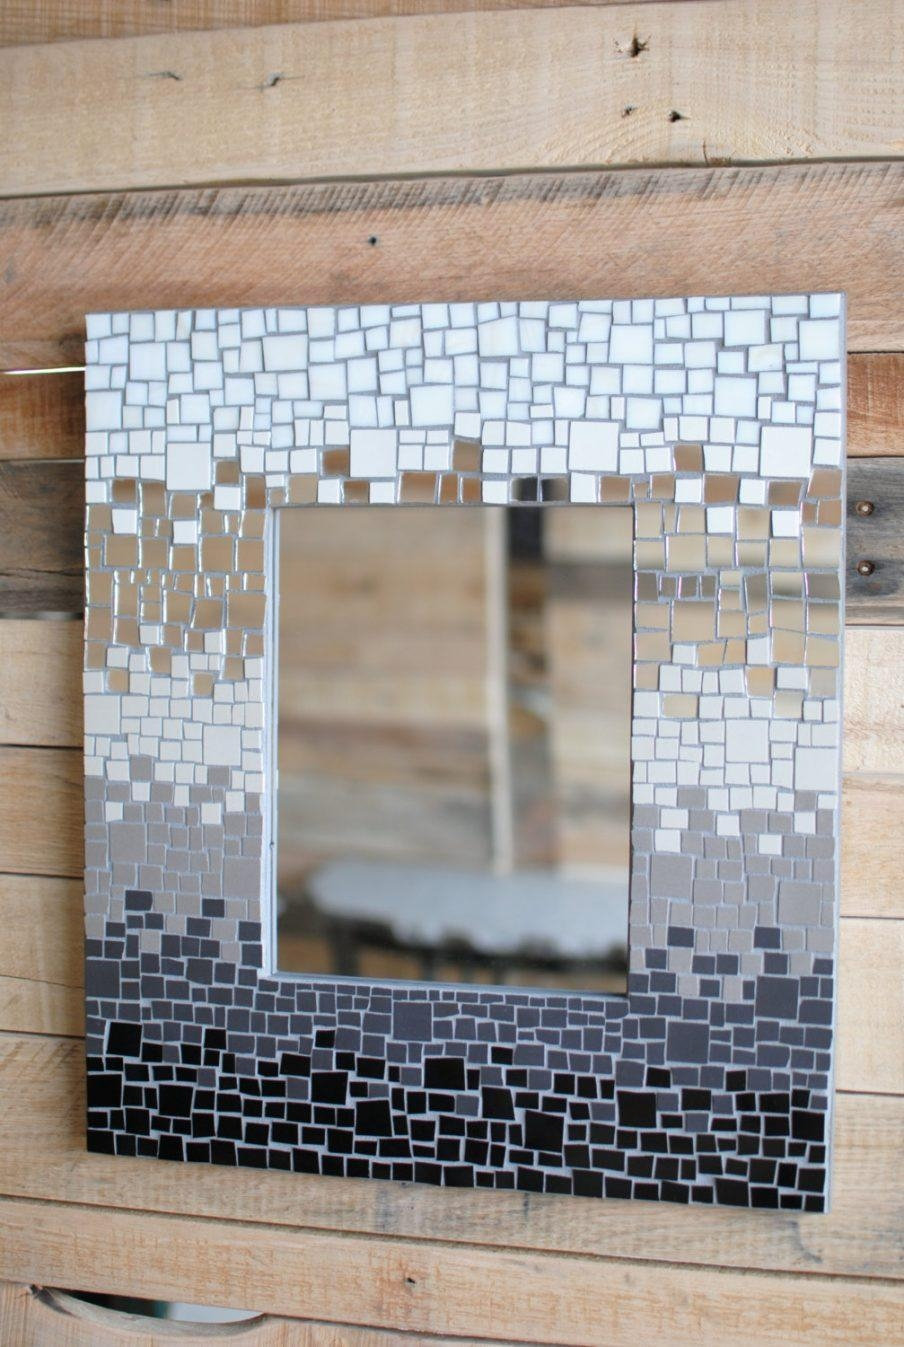 Ergonomic Mirror Mosaic Wall Art Diy Custom Mirror Mosaic Mirror Inside Diy Mosaic Wall Art (Image 18 of 20)